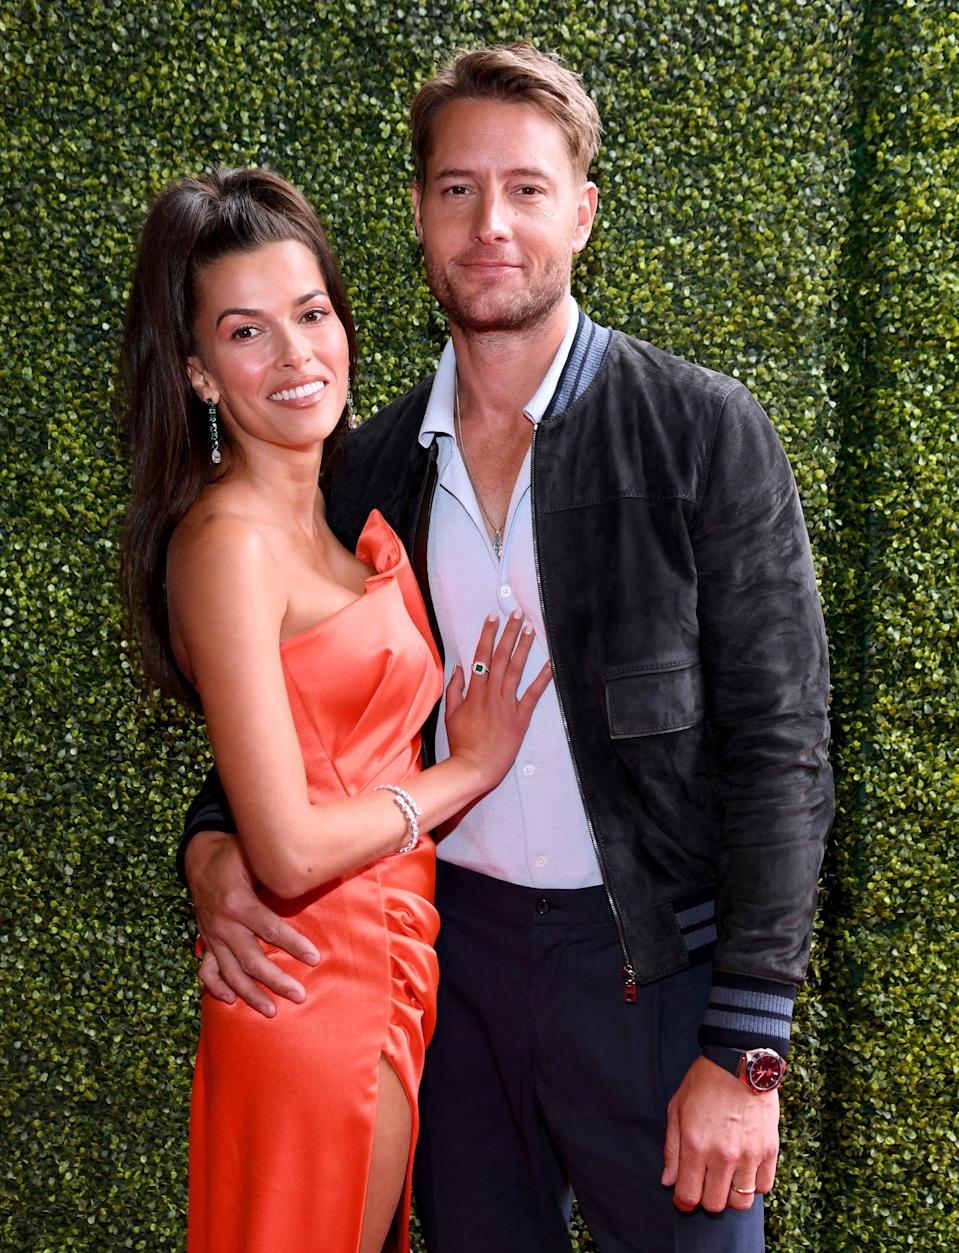 """<p>After <a href=""""https://www.popsugar.com/celebrity/who-is-justin-hartley-dating-47518015"""" class=""""link rapid-noclick-resp"""" rel=""""nofollow noopener"""" target=""""_blank"""" data-ylk=""""slk:a year of dating"""">a year of dating</a>, news broke in May that <a href=""""https://www.popsugar.com/celebrity/justin-hartley-and-sofia-pernas-married-48327681"""" class=""""link rapid-noclick-resp"""" rel=""""nofollow noopener"""" target=""""_blank"""" data-ylk=""""slk:the two got married"""">the two got married</a>. That same month, Sofia and Justin also made <a href=""""https://www.popsugar.com/celebrity/justin-hartley-sofia-pernas-mtv-movie-tv-awards-2021-48325874"""" class=""""link rapid-noclick-resp"""" rel=""""nofollow noopener"""" target=""""_blank"""" data-ylk=""""slk:their red carpet debut as a couple"""">their red carpet debut as a couple</a> at the MTV Movie &amp; TV Awards.</p>"""